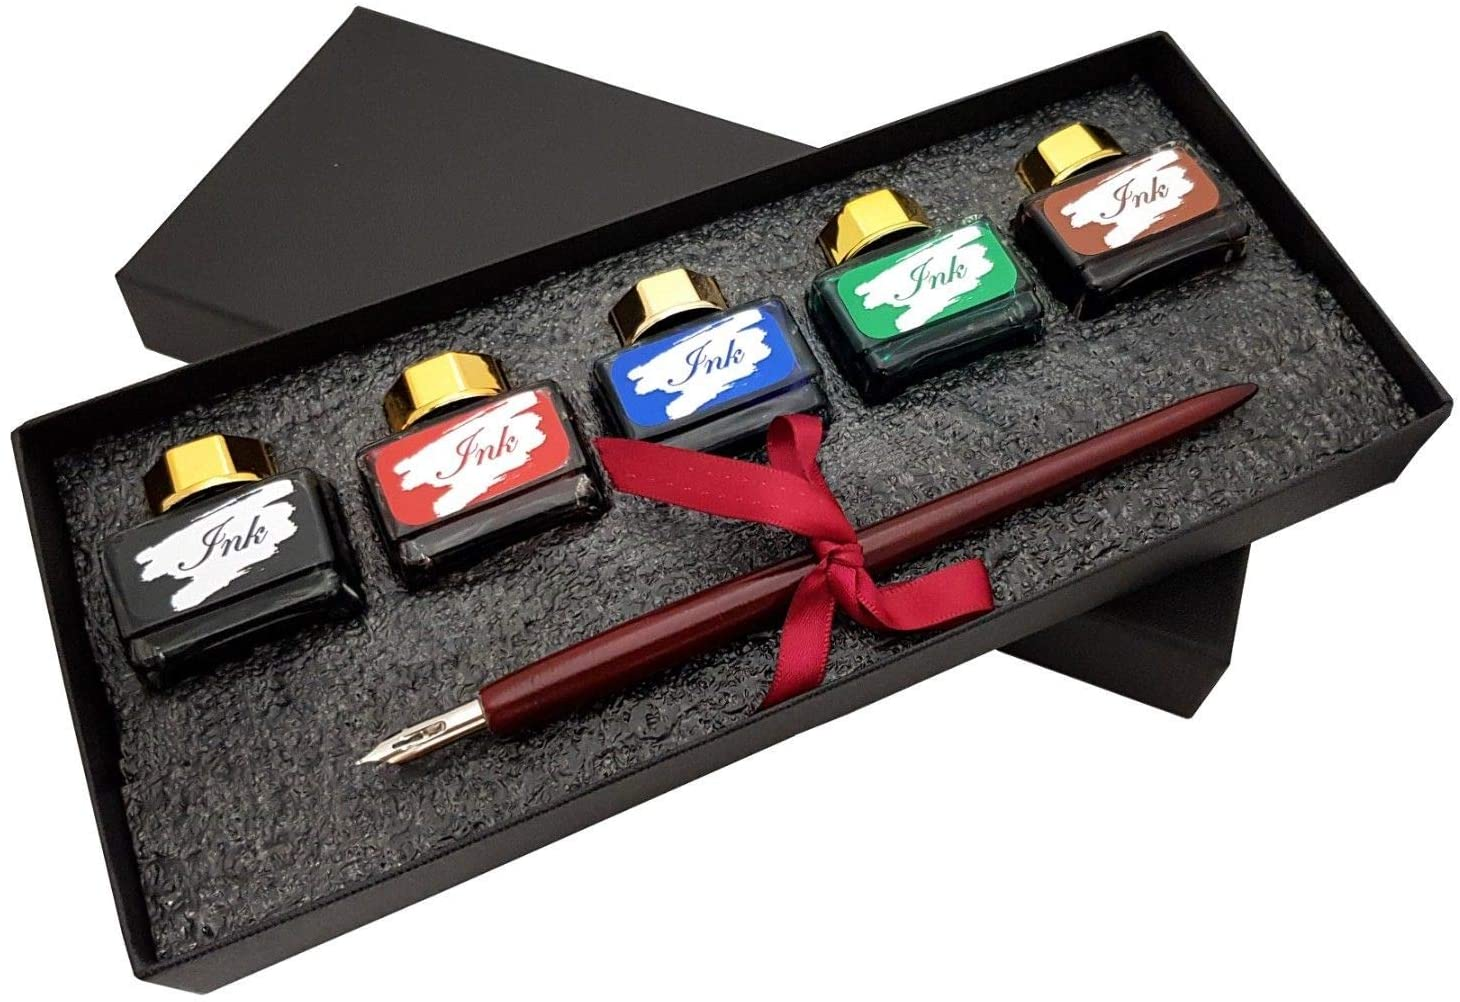 Kentaur Calligraphy Dip Pen with Ink Set